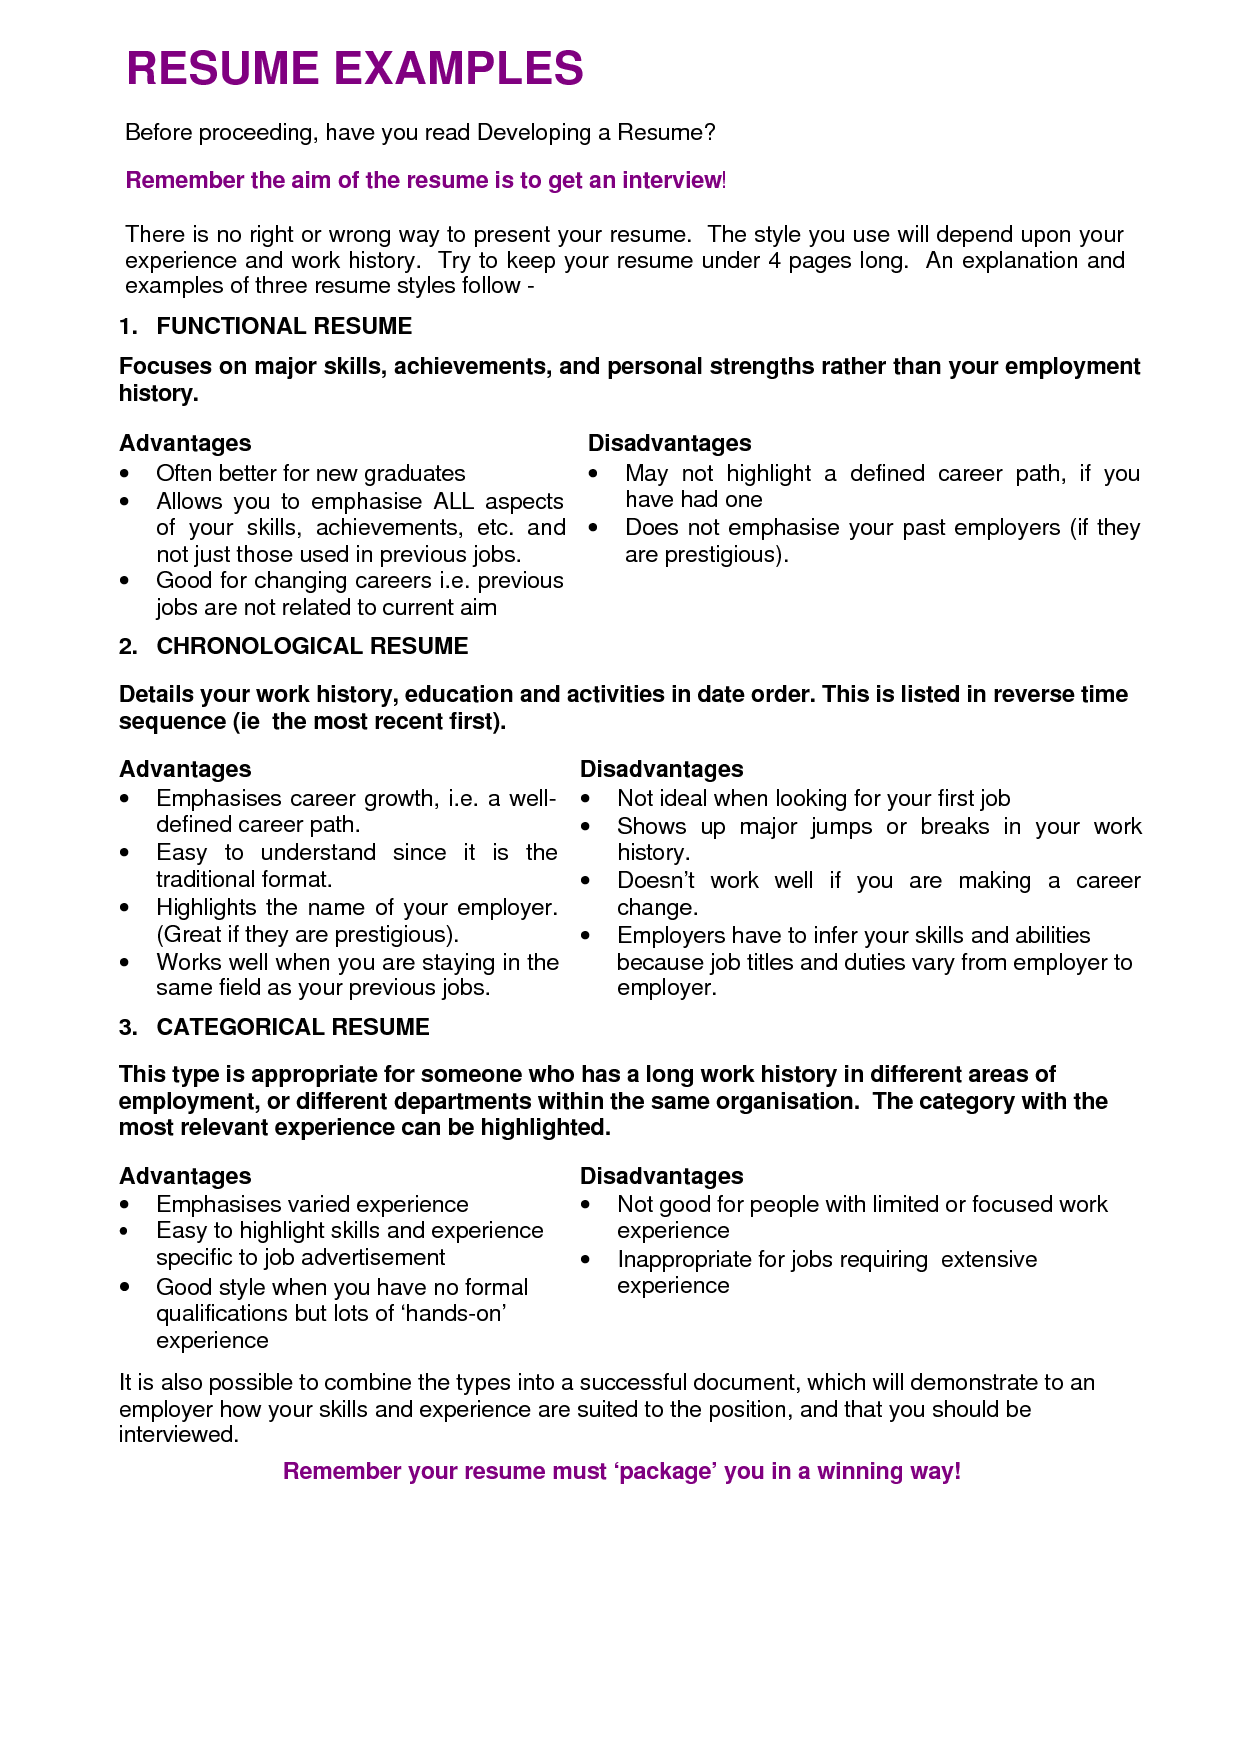 Resume objective examples best templateresume objective examples resume objective examples best templateresume objective examples application letter sample altavistaventures Gallery